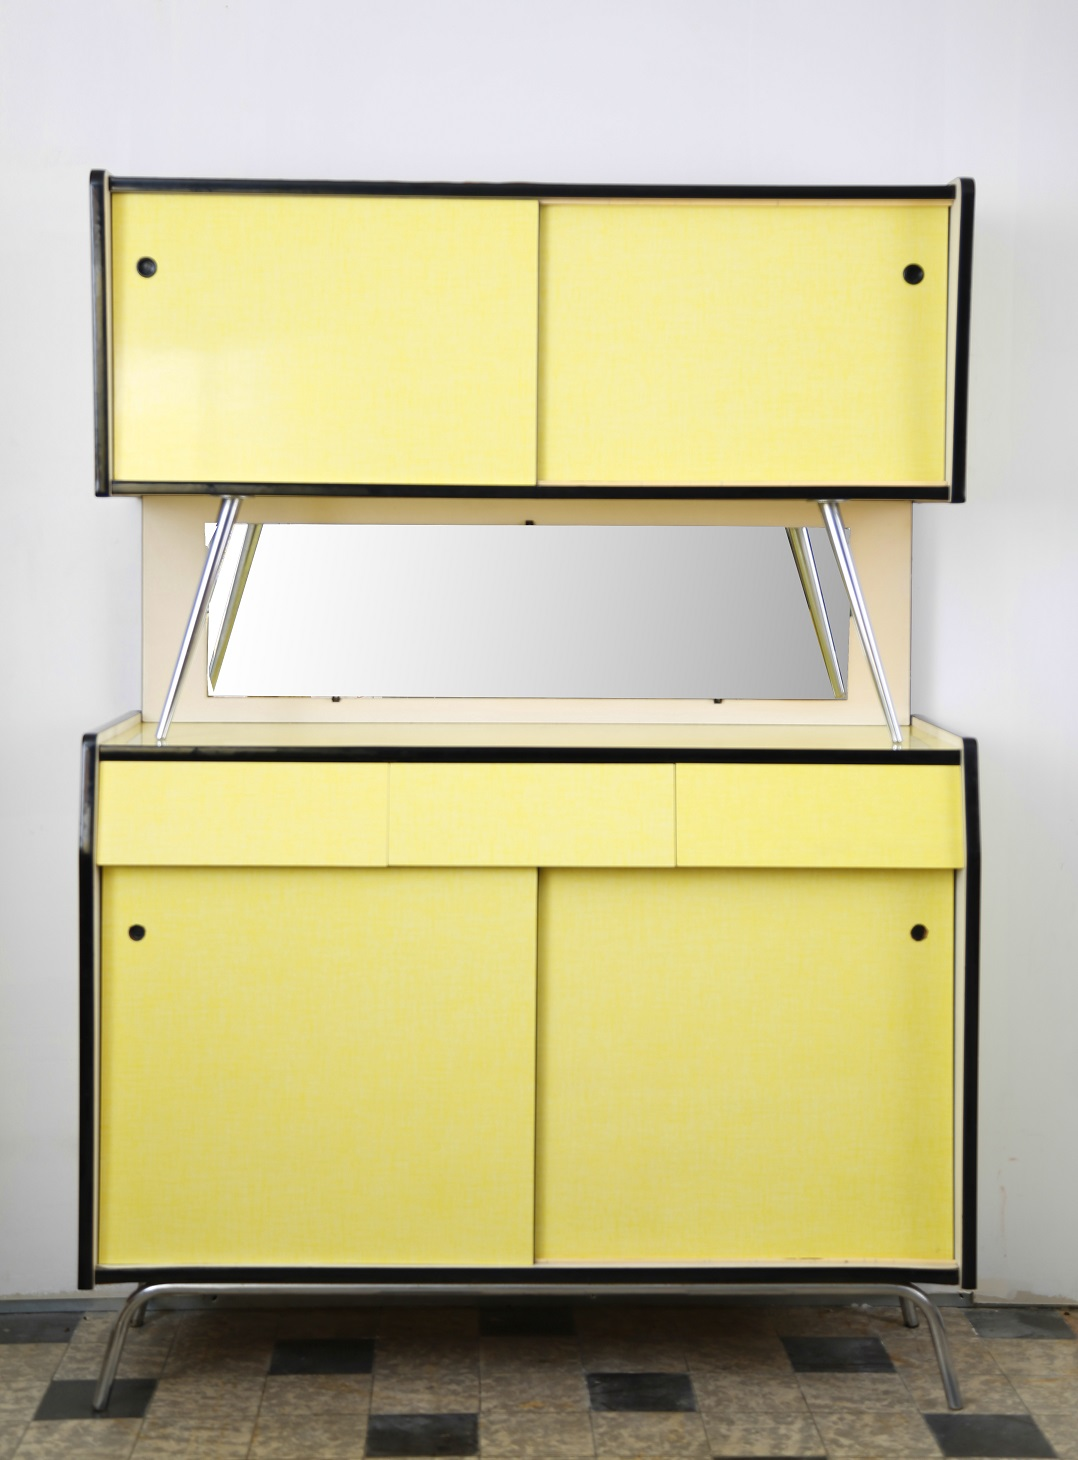 cuisine formica jaune resine de protection pour peinture. Black Bedroom Furniture Sets. Home Design Ideas